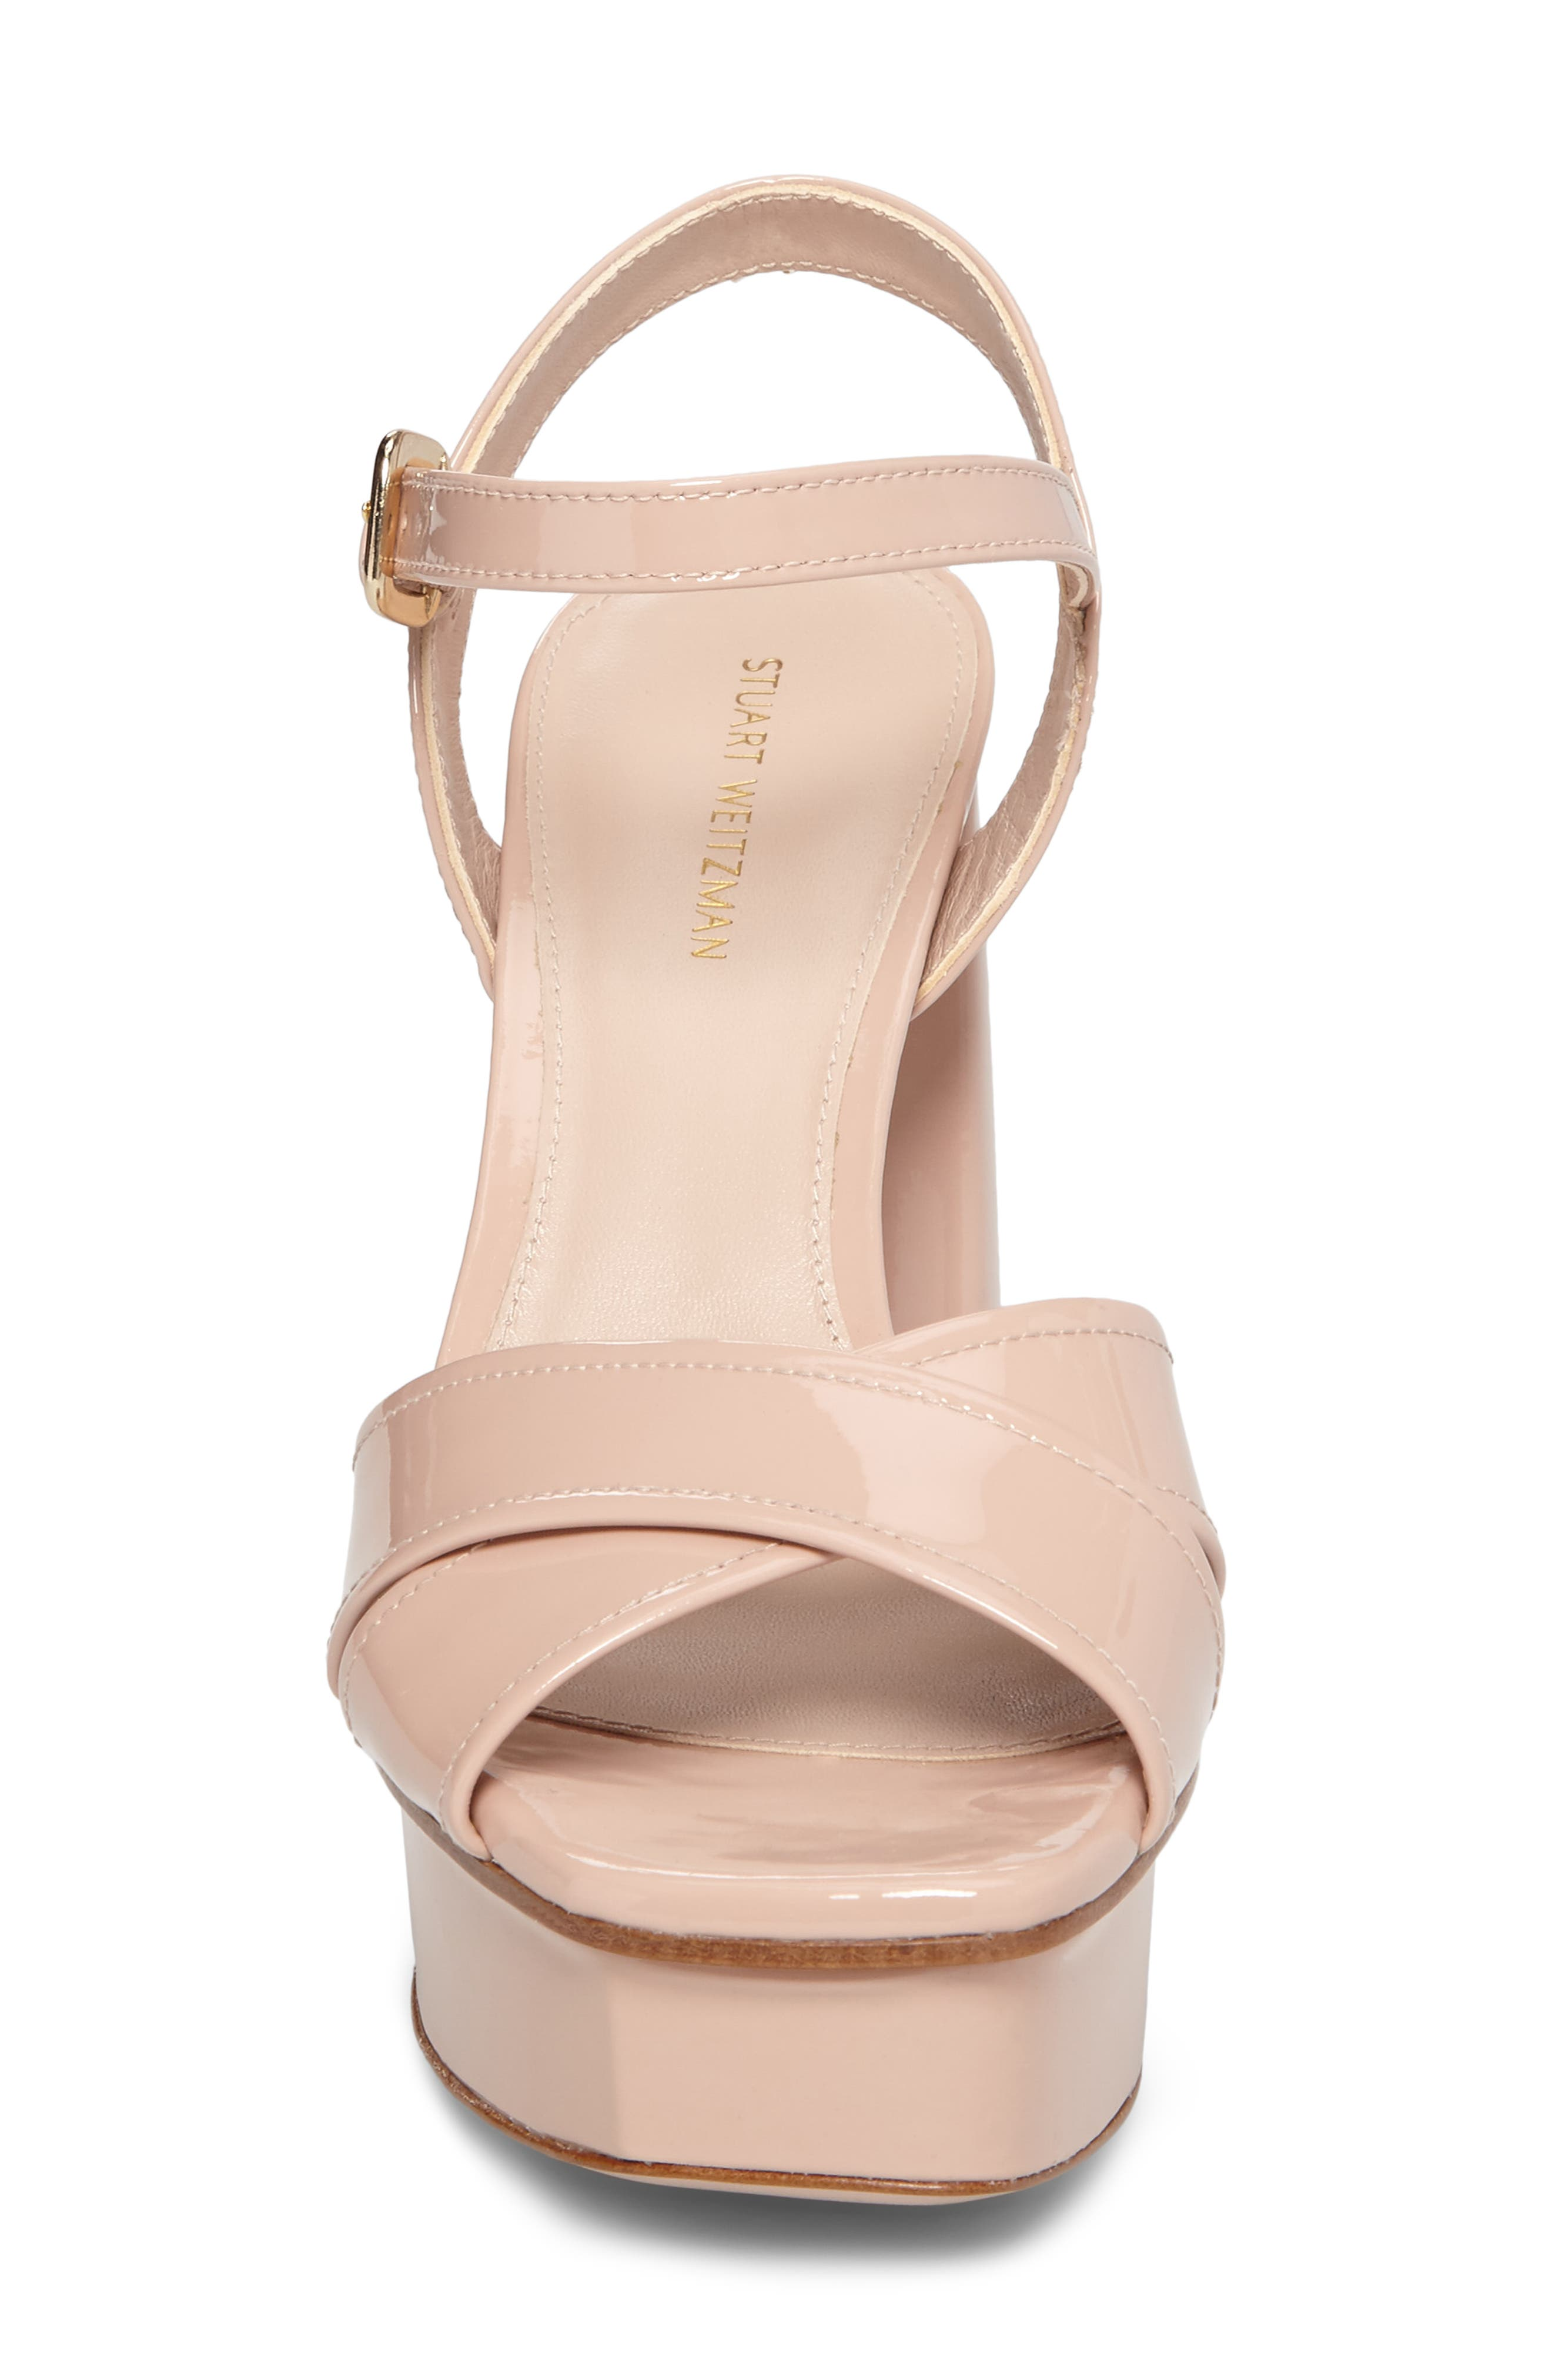 Exposed Platform Sandal,                             Alternate thumbnail 18, color,